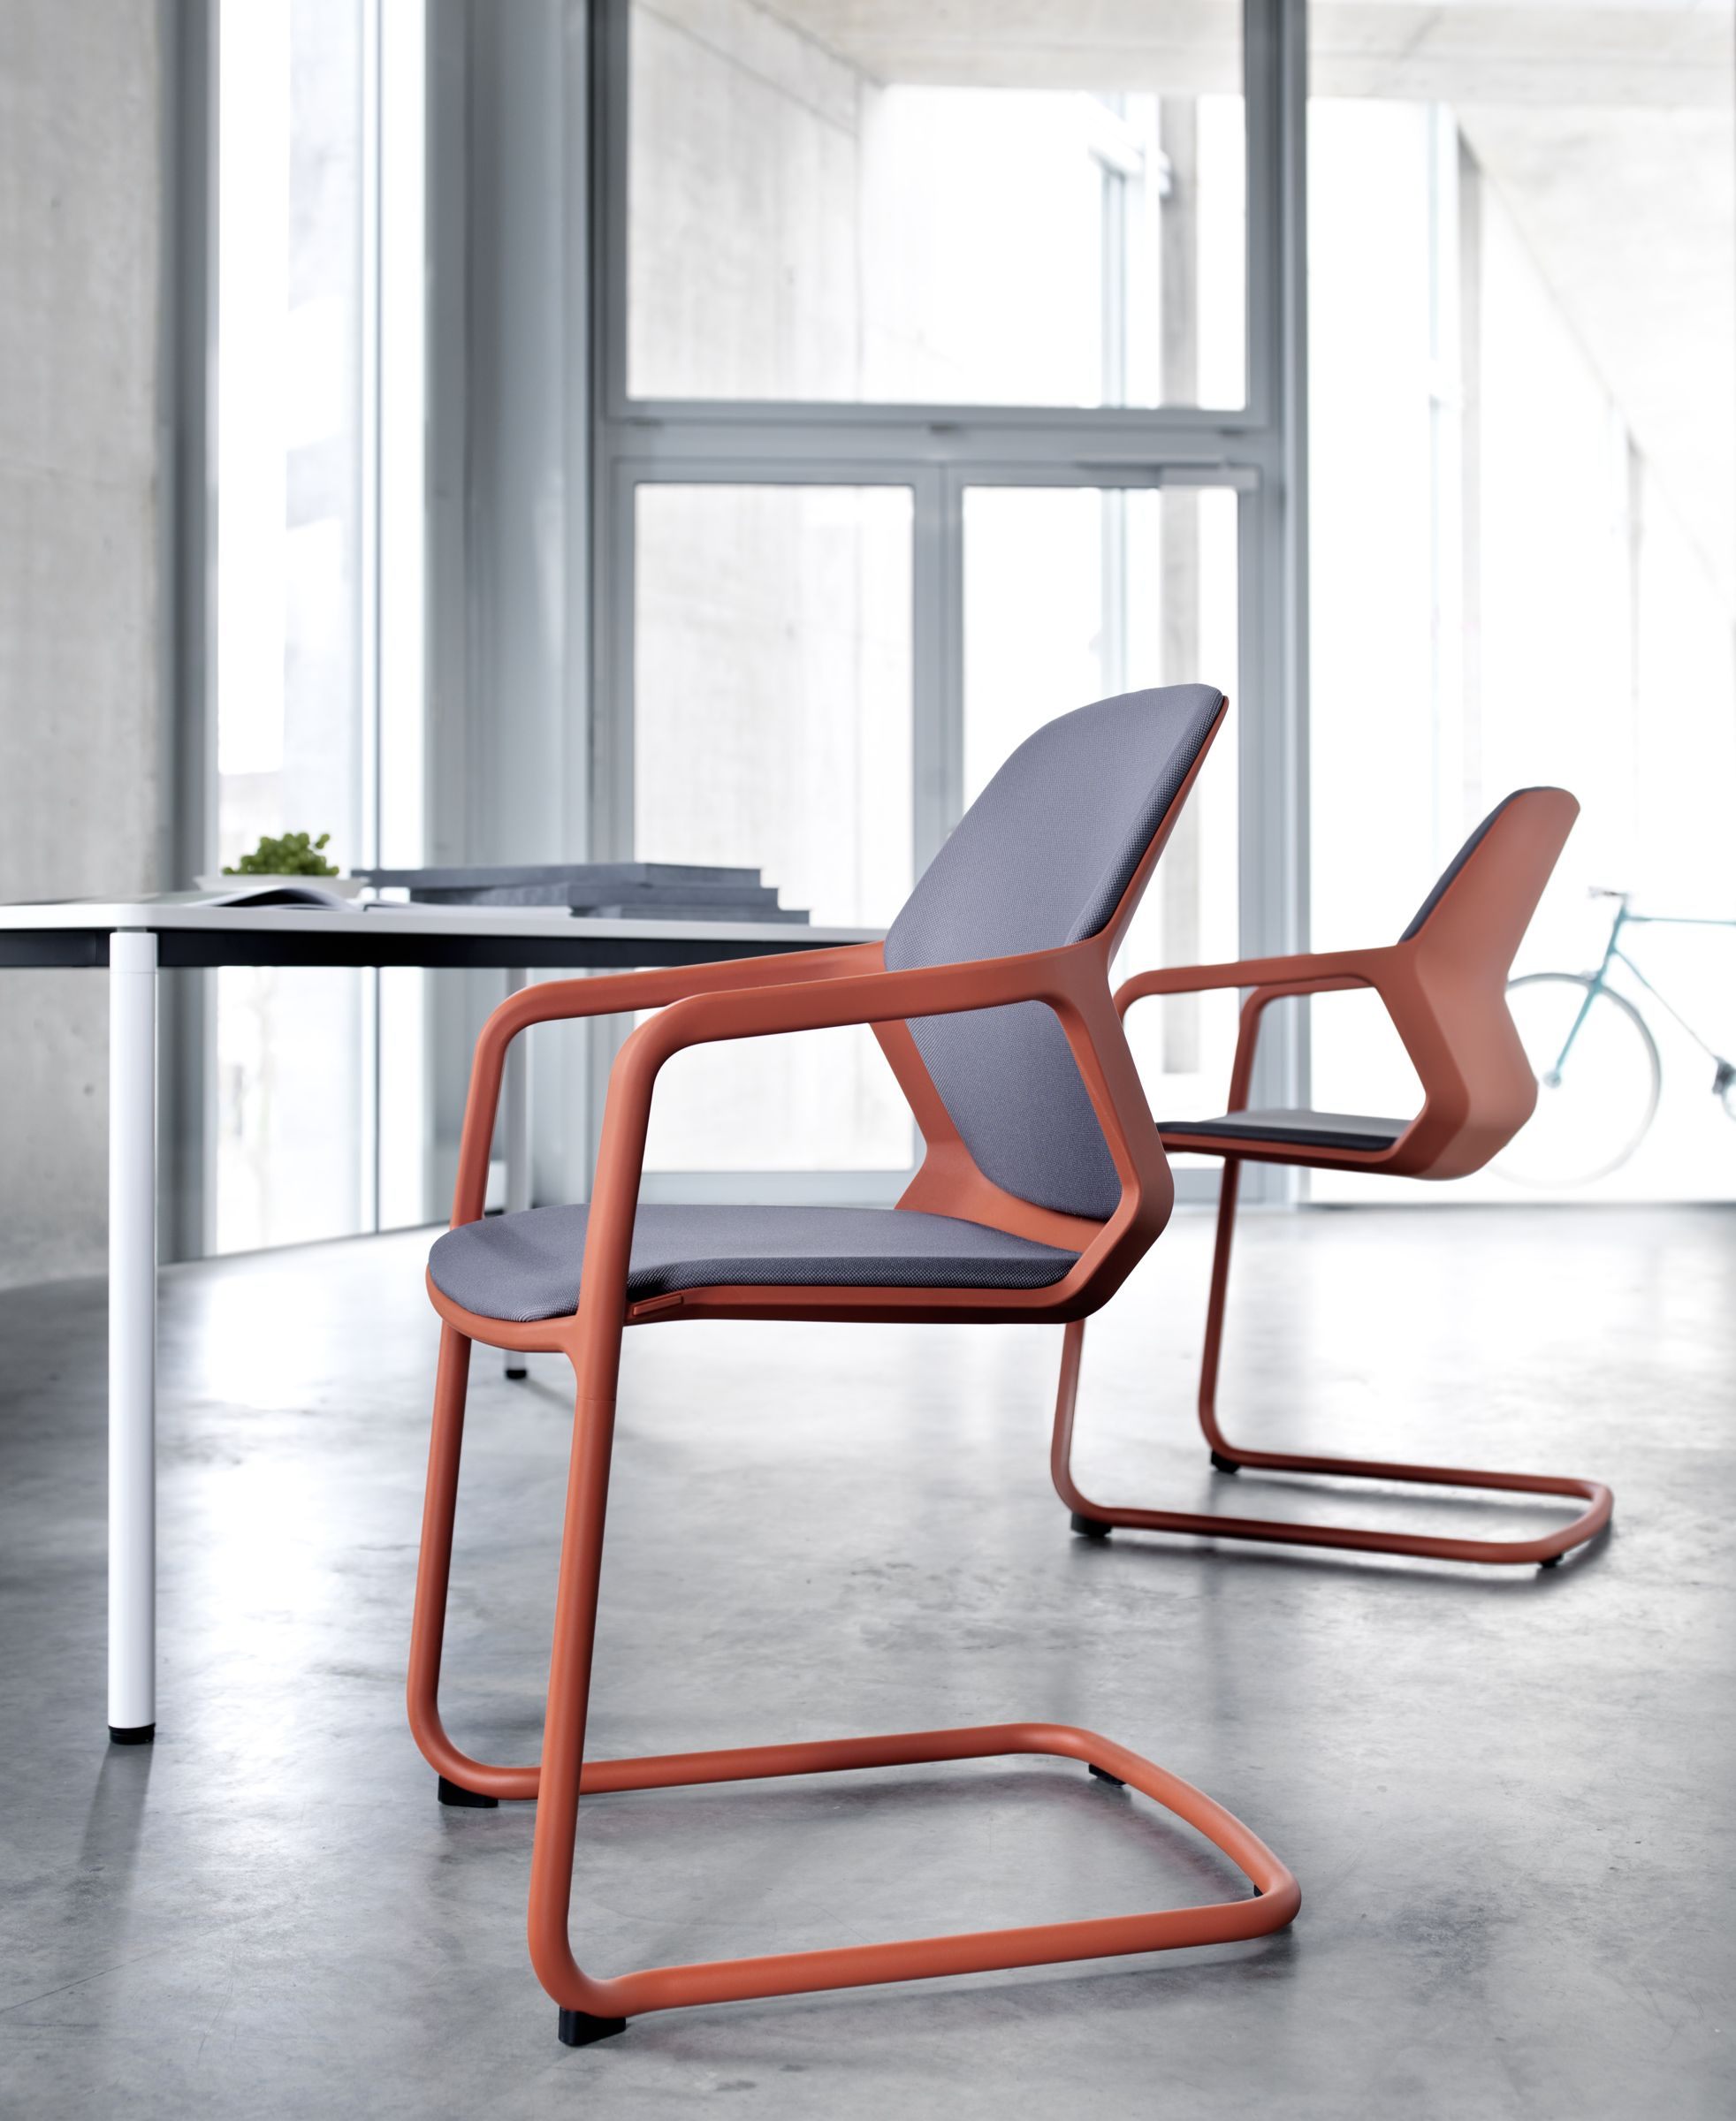 Wilkhahn Sessel Metrik Chair Cantilever Chair Desing By Whiteid Wilkhahn